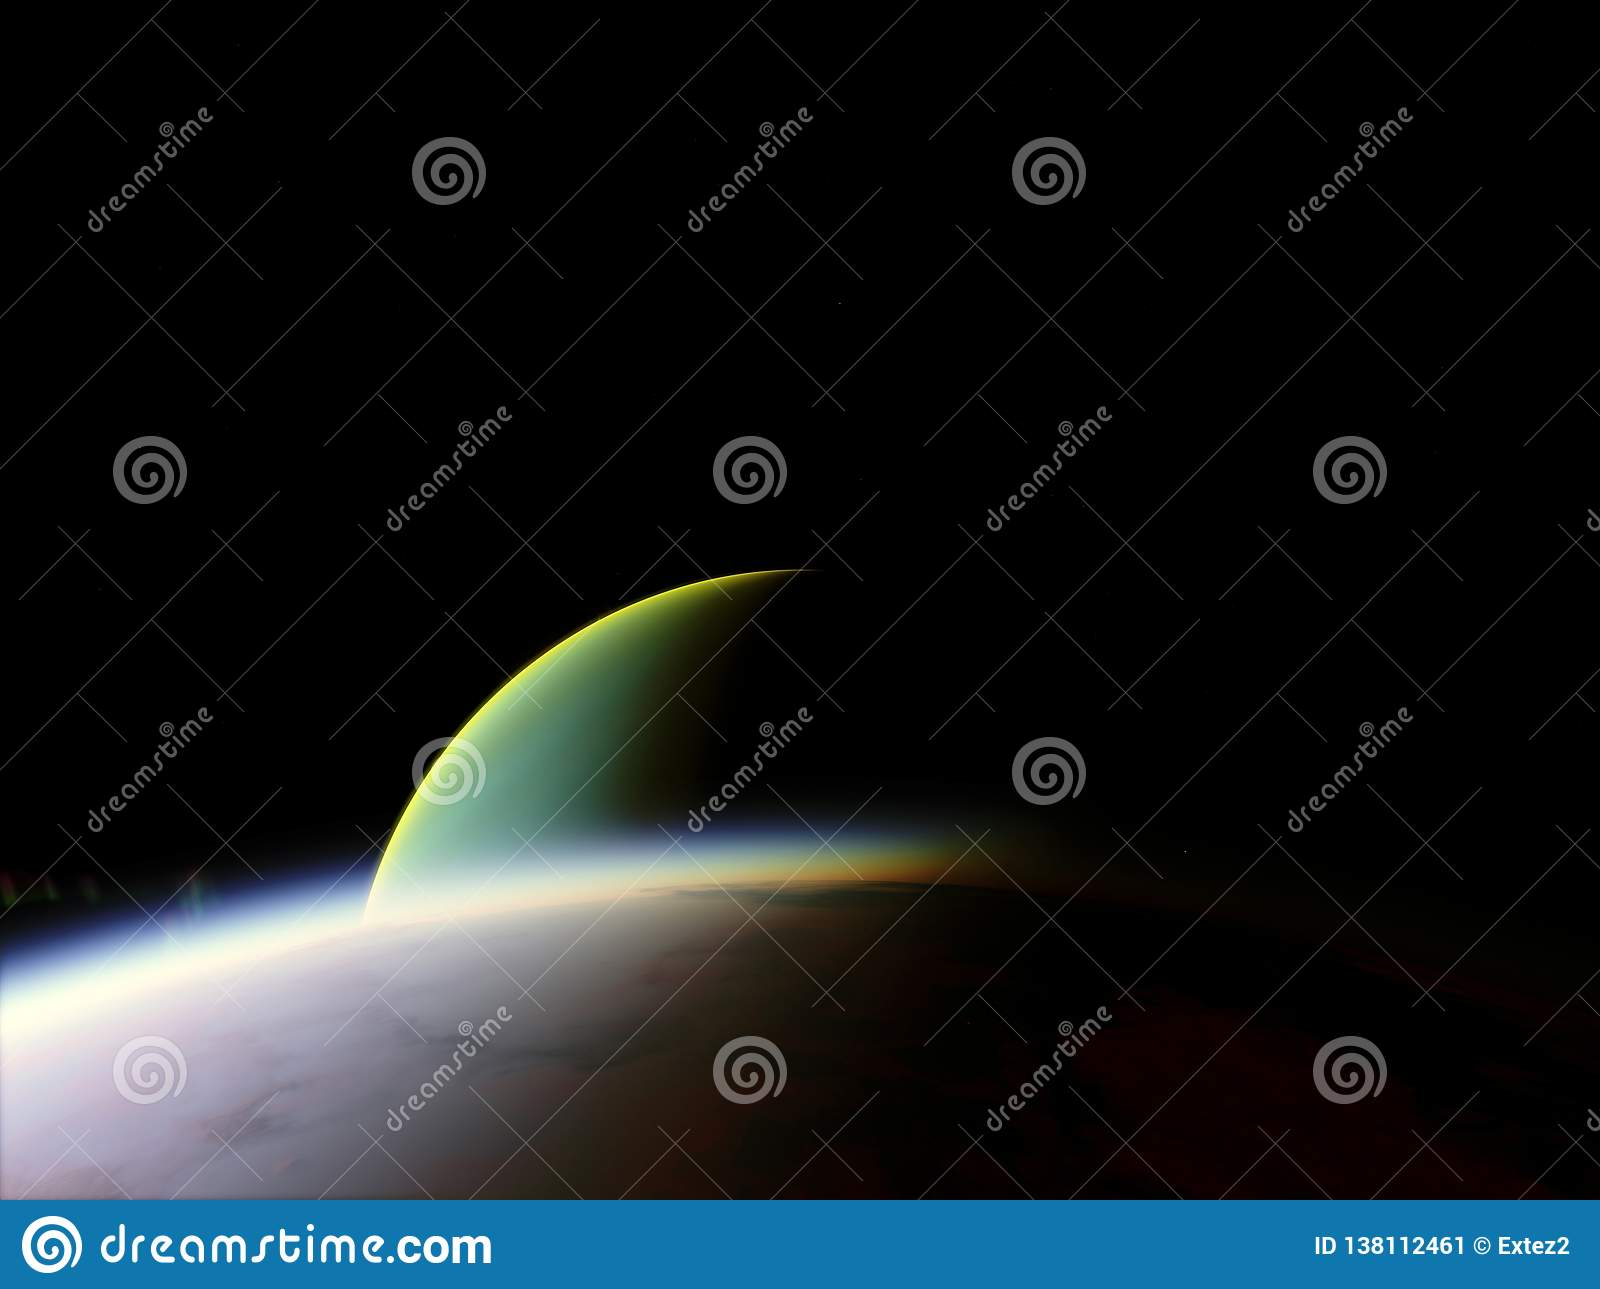 Planet In The Space Colorful Art Solar System Gradient Color Space Wallpaper High Quality Resolution 4k Elements Stock Illustration Illustration Of Green Concept 138112461